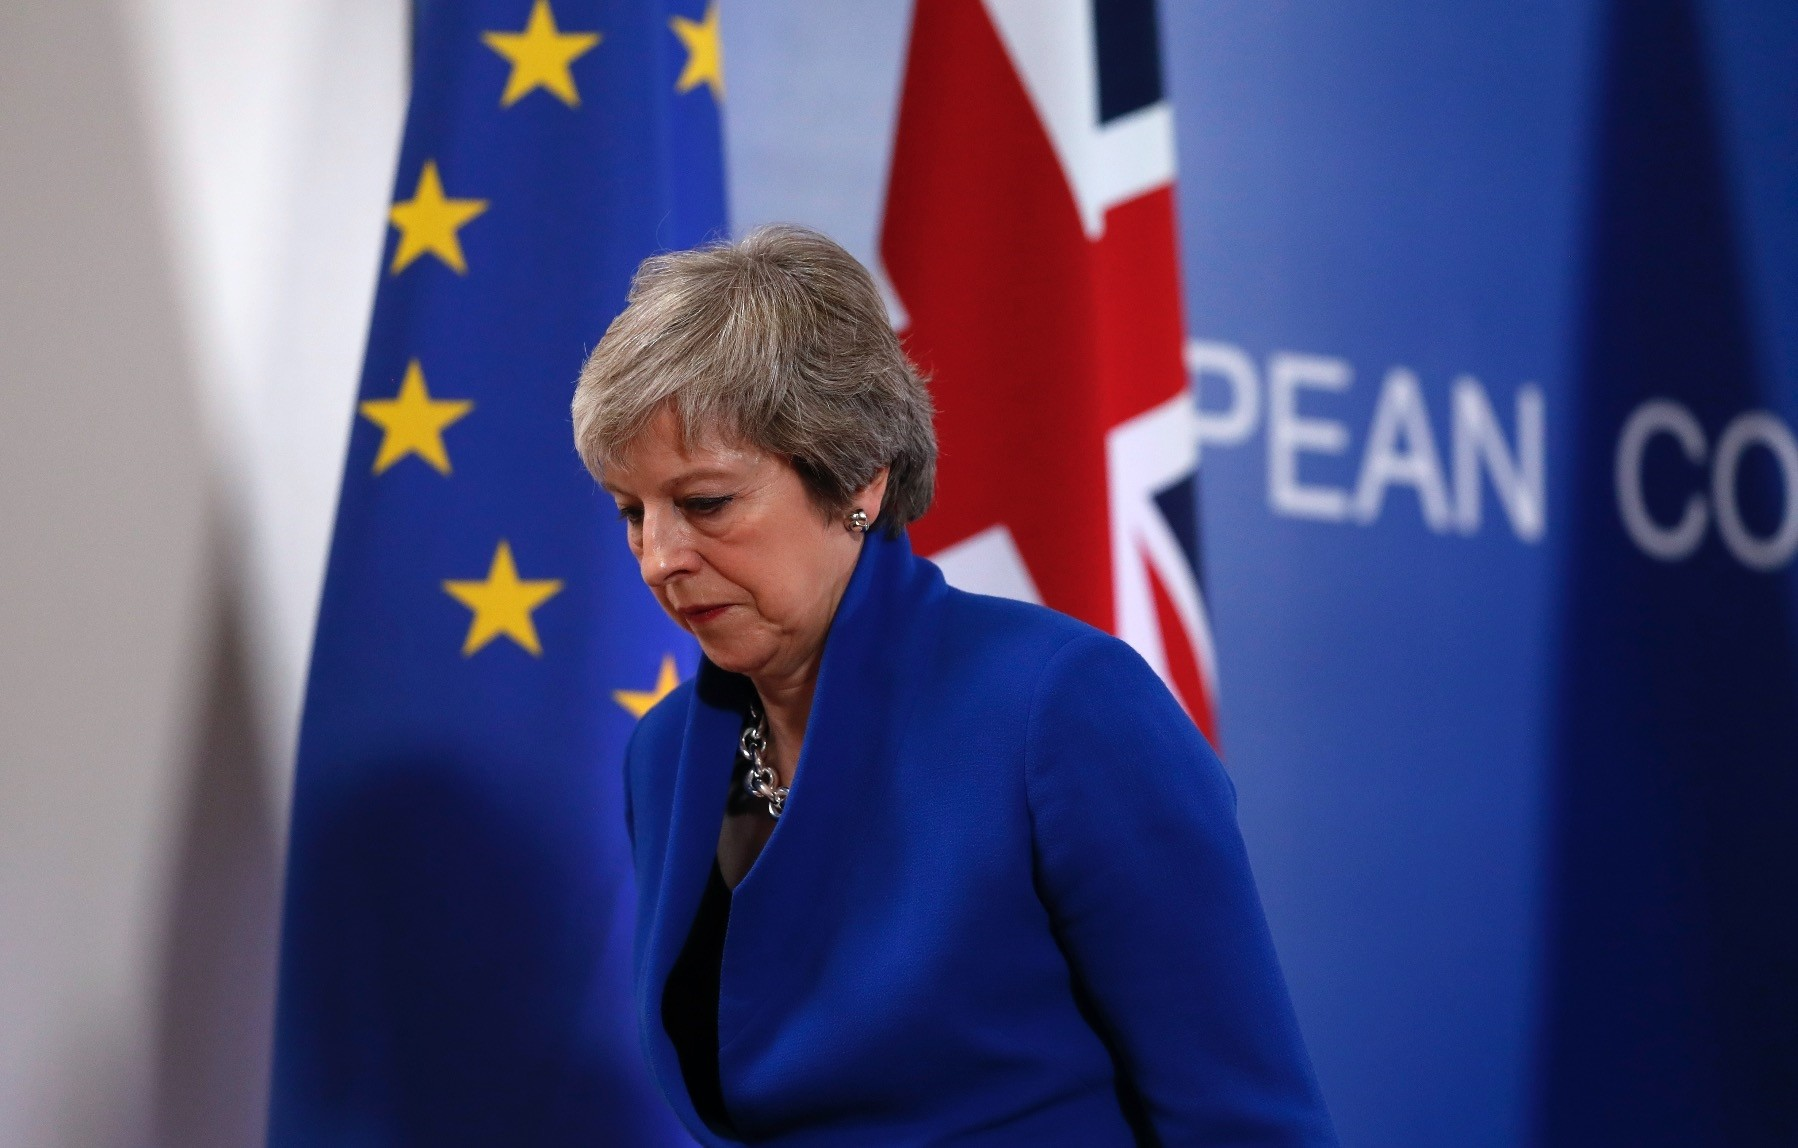 British Prime Minister Theresa May leaves the podium after a media conference, Brussels, Nov. 25.